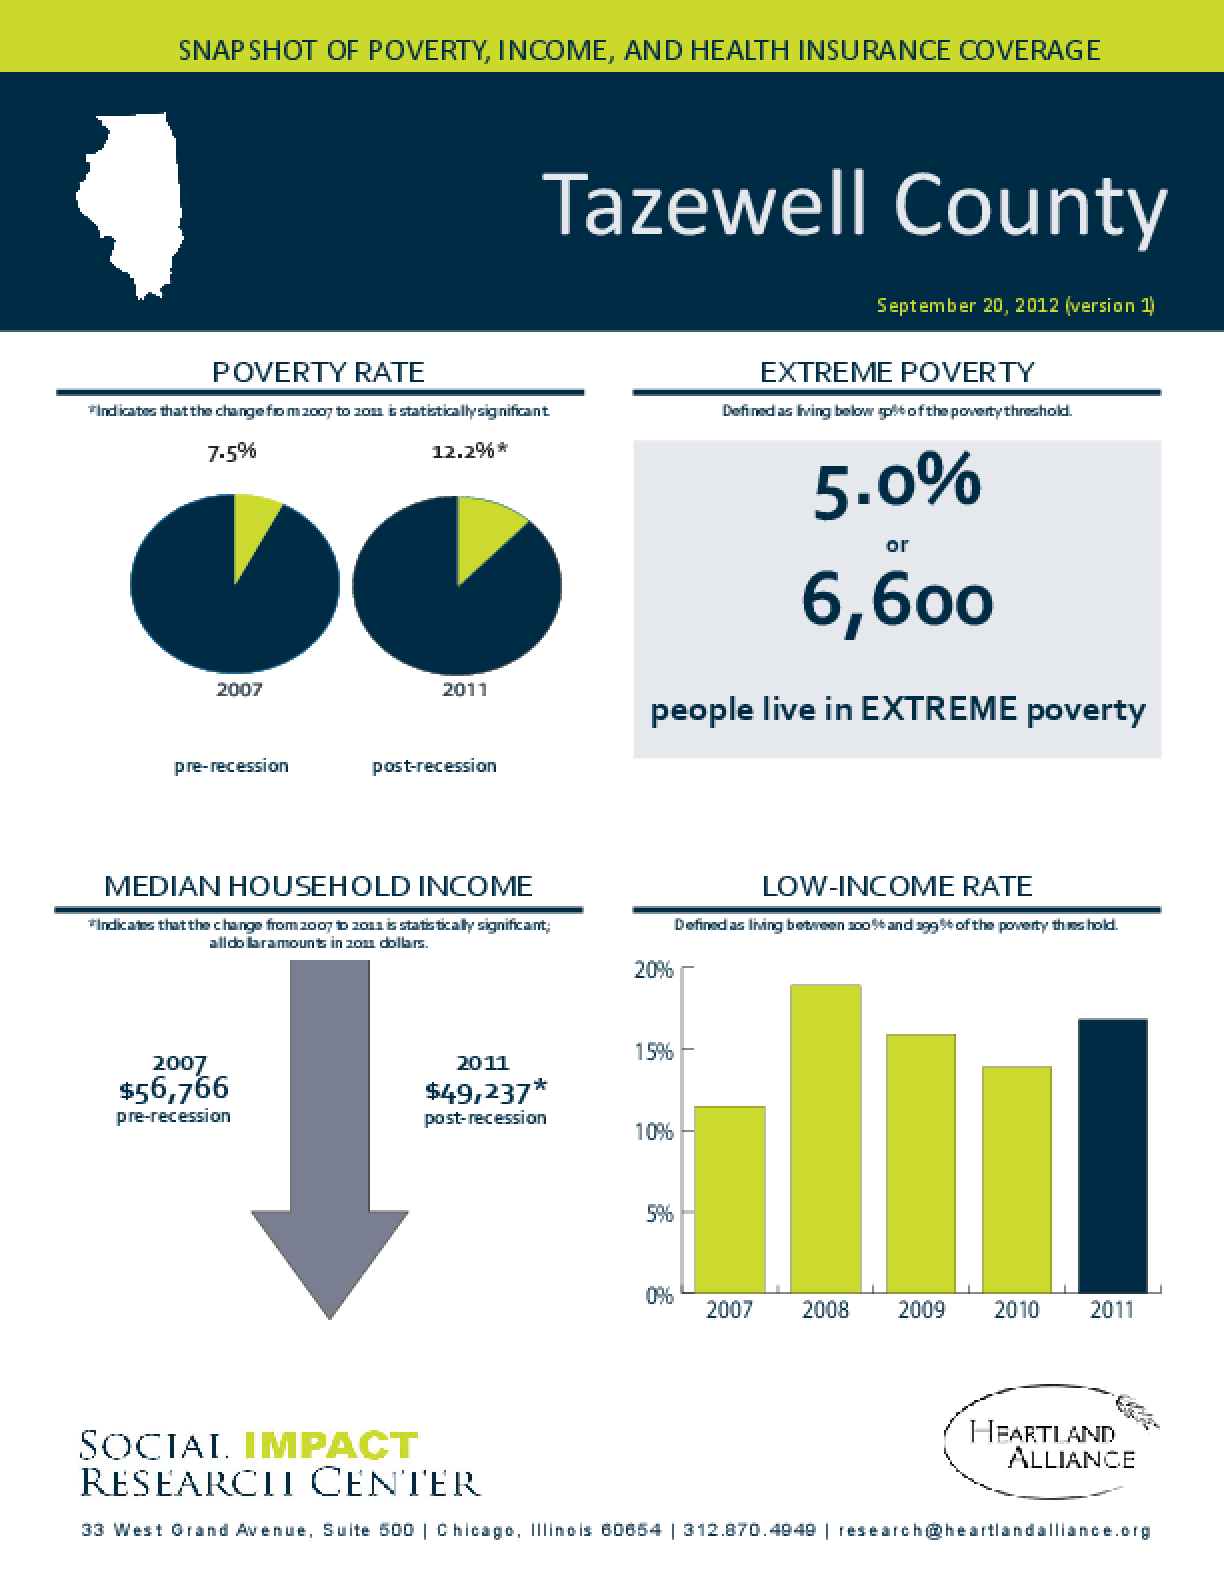 Tazewell County: Snapshot of Poverty, Income, and Health Insurance Coverage - 2011